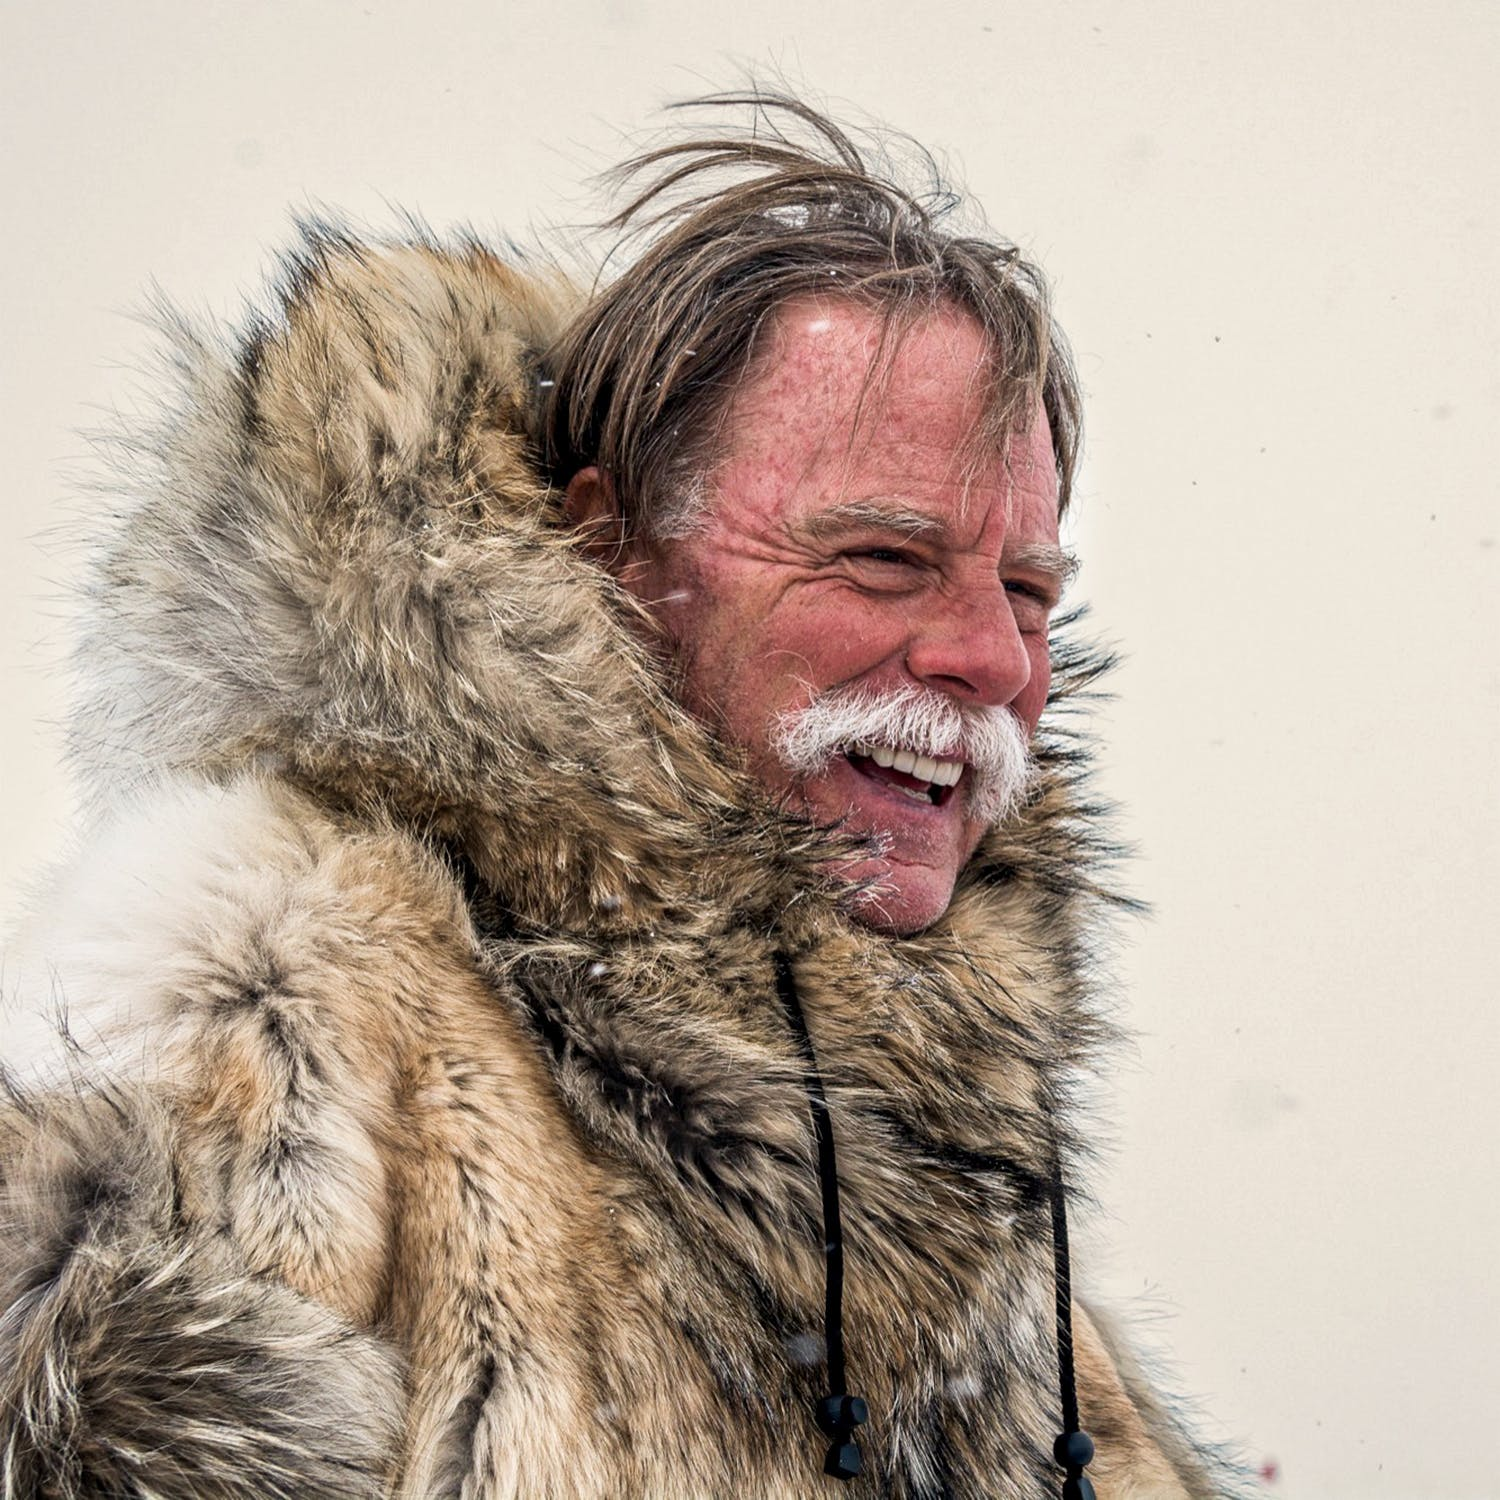 White at the geographical South Pole on December 14th, 2018, the date that Roald Amundsen and his men arrived at the South Pole in 1911.